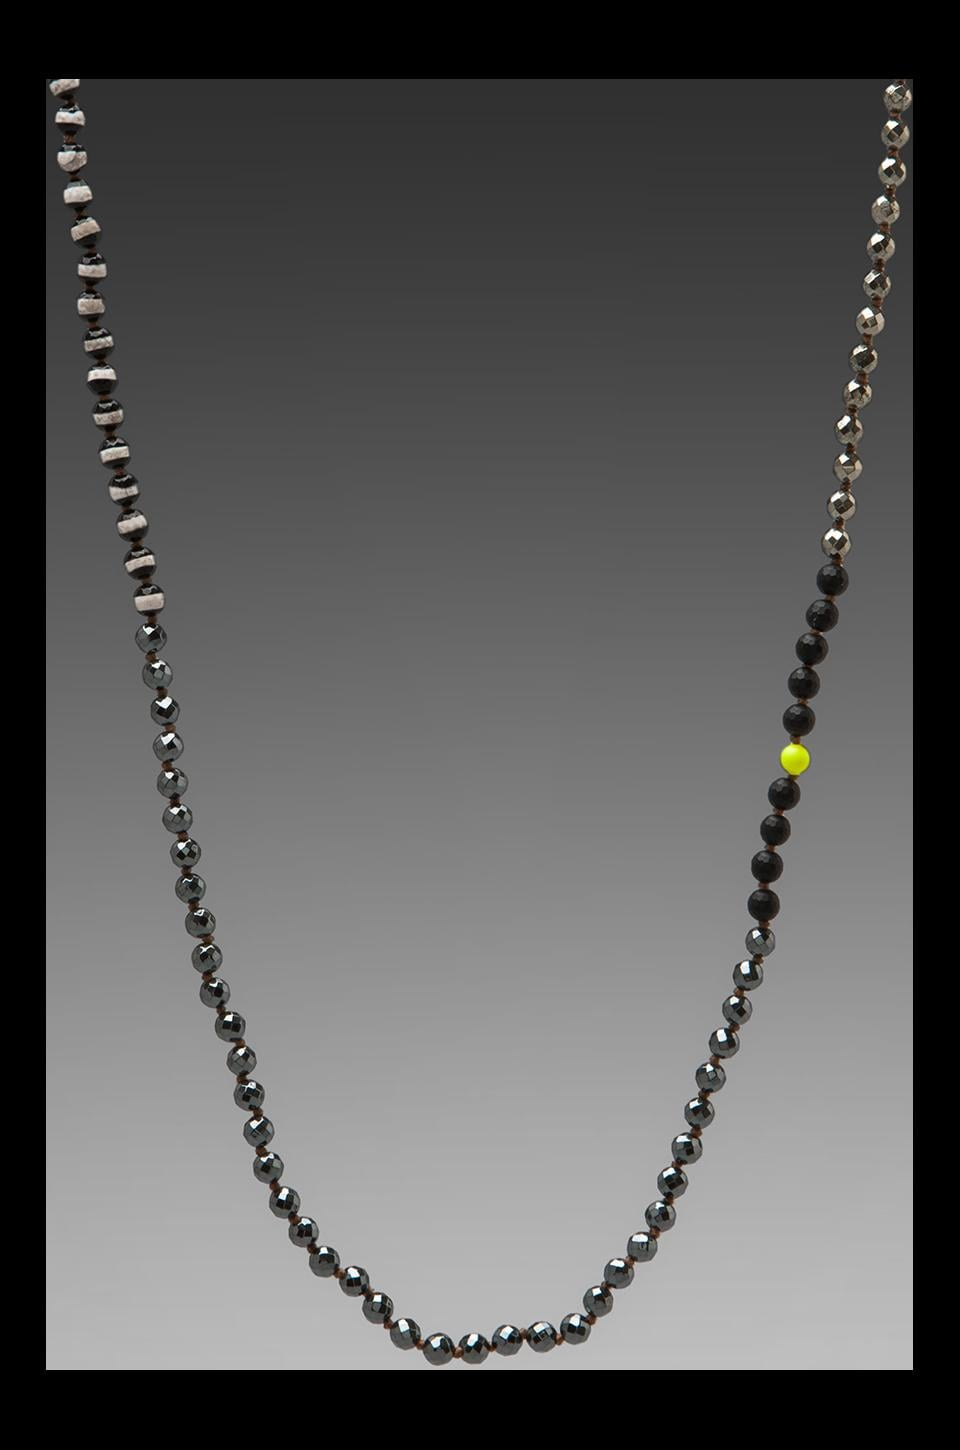 CHAN LUU Necklace in Pyrite Mix